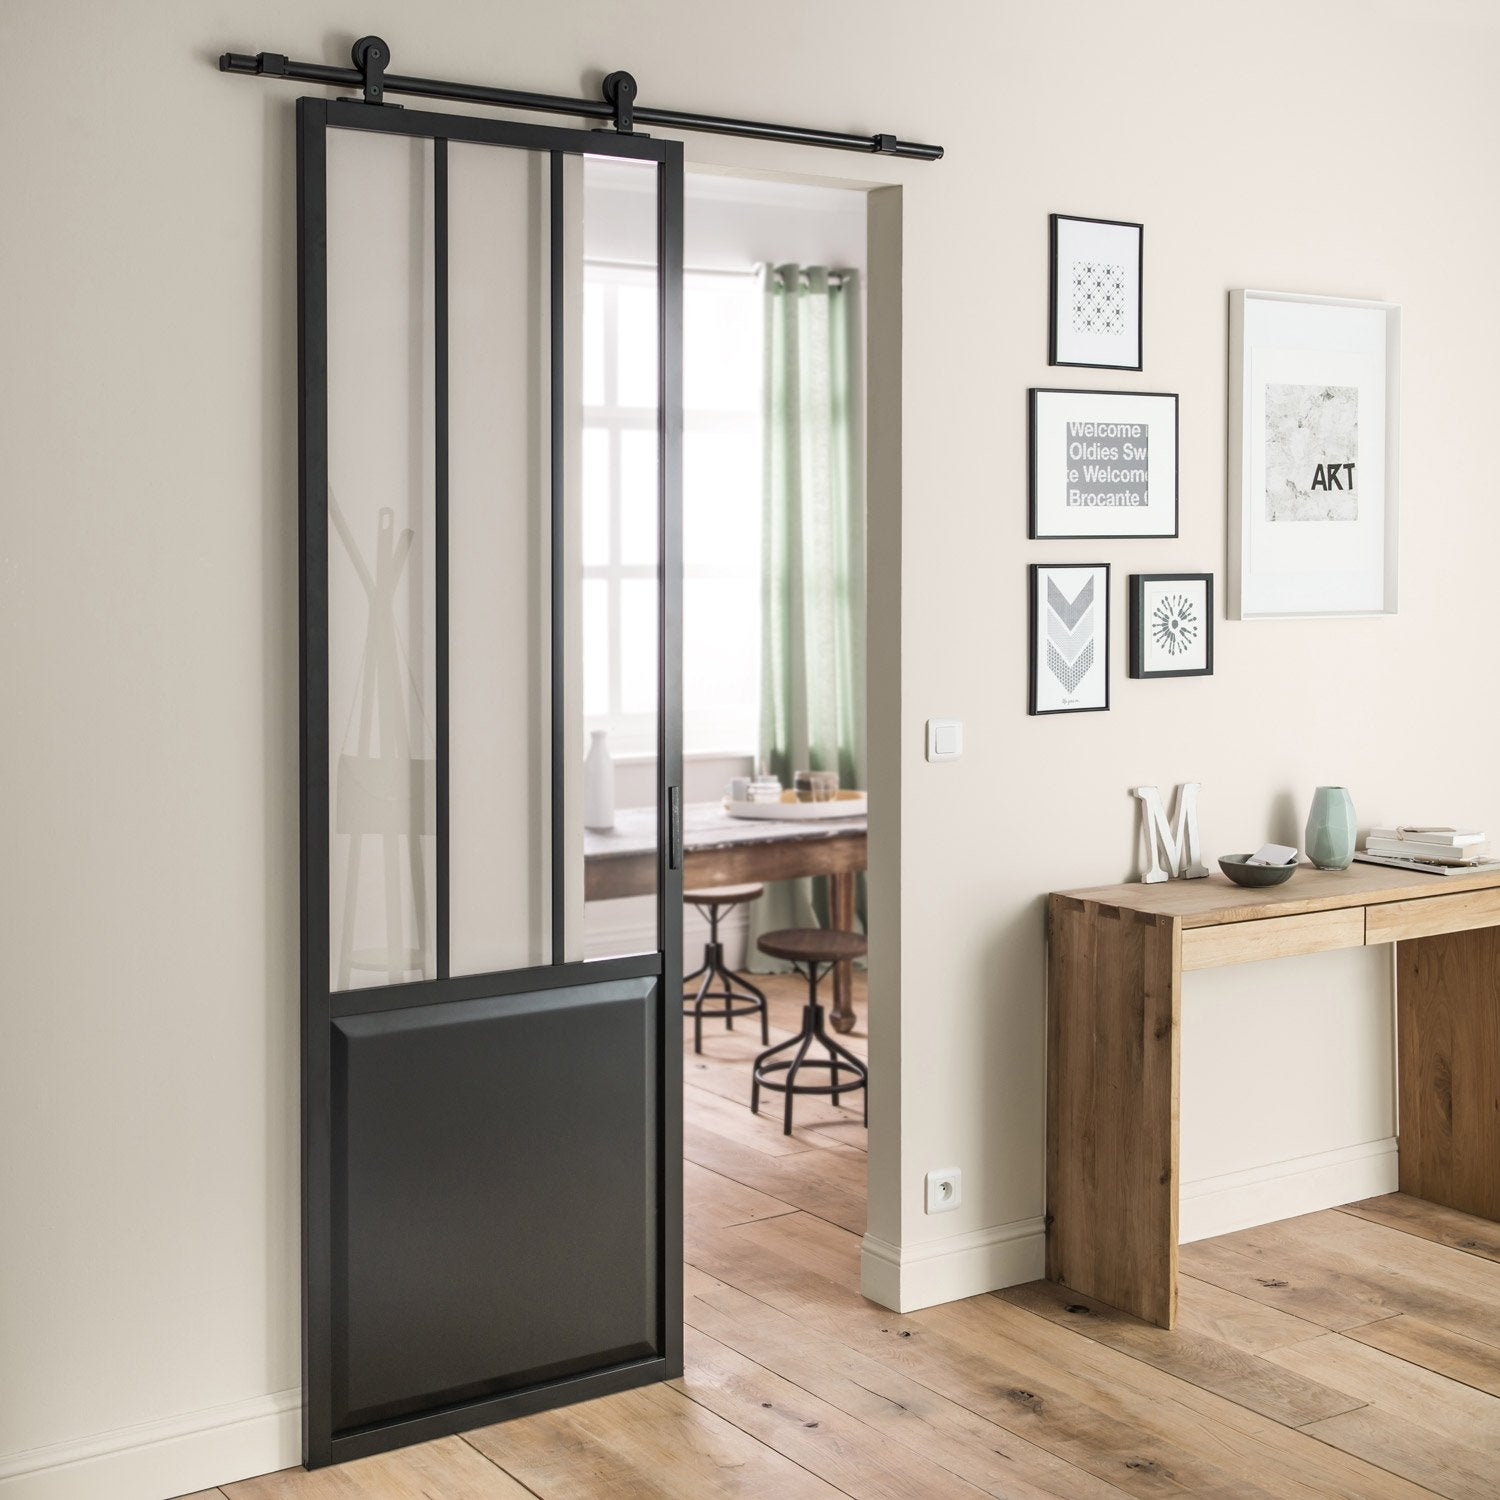 Ensemble porte coulissante atelier mdf rev tu avec le rail for Porte de salon a galandage